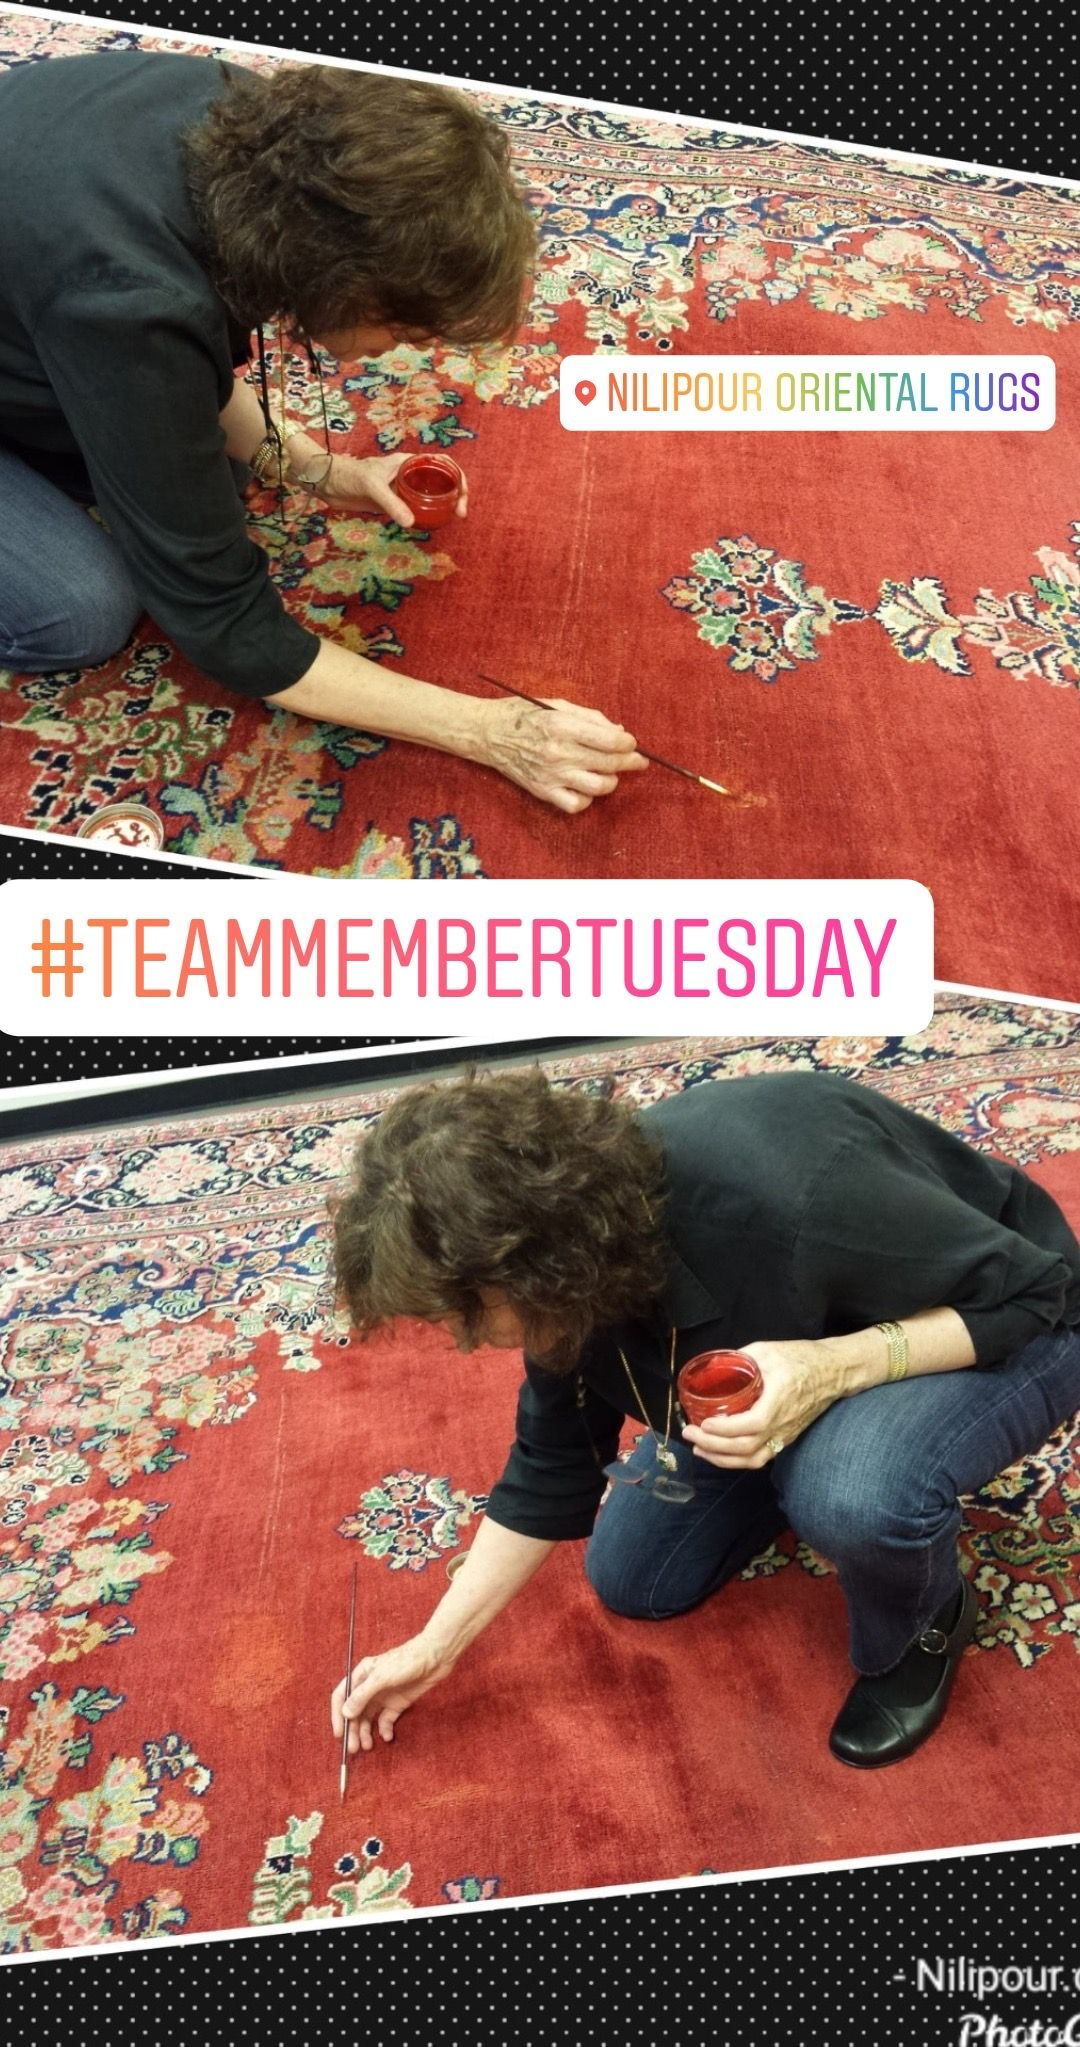 #TalentedTuesday #TeamMemberTuesday Highlighting Mrs. Nilipour and her amazing talents as she creatively preserves authenticity and restores life to this #orientalrug with the art of #overdying #since1972 our #familybusiness has been serving our community through #rugcleaning #rugrepair and #rugrestoration We can help you maintain the integrity of your family heirloom #rug #NilipourOrientalRugs #rugcleaners #arearugcleaning #orientalrugcleaning #arearugrestoration #orientalrugrestoration